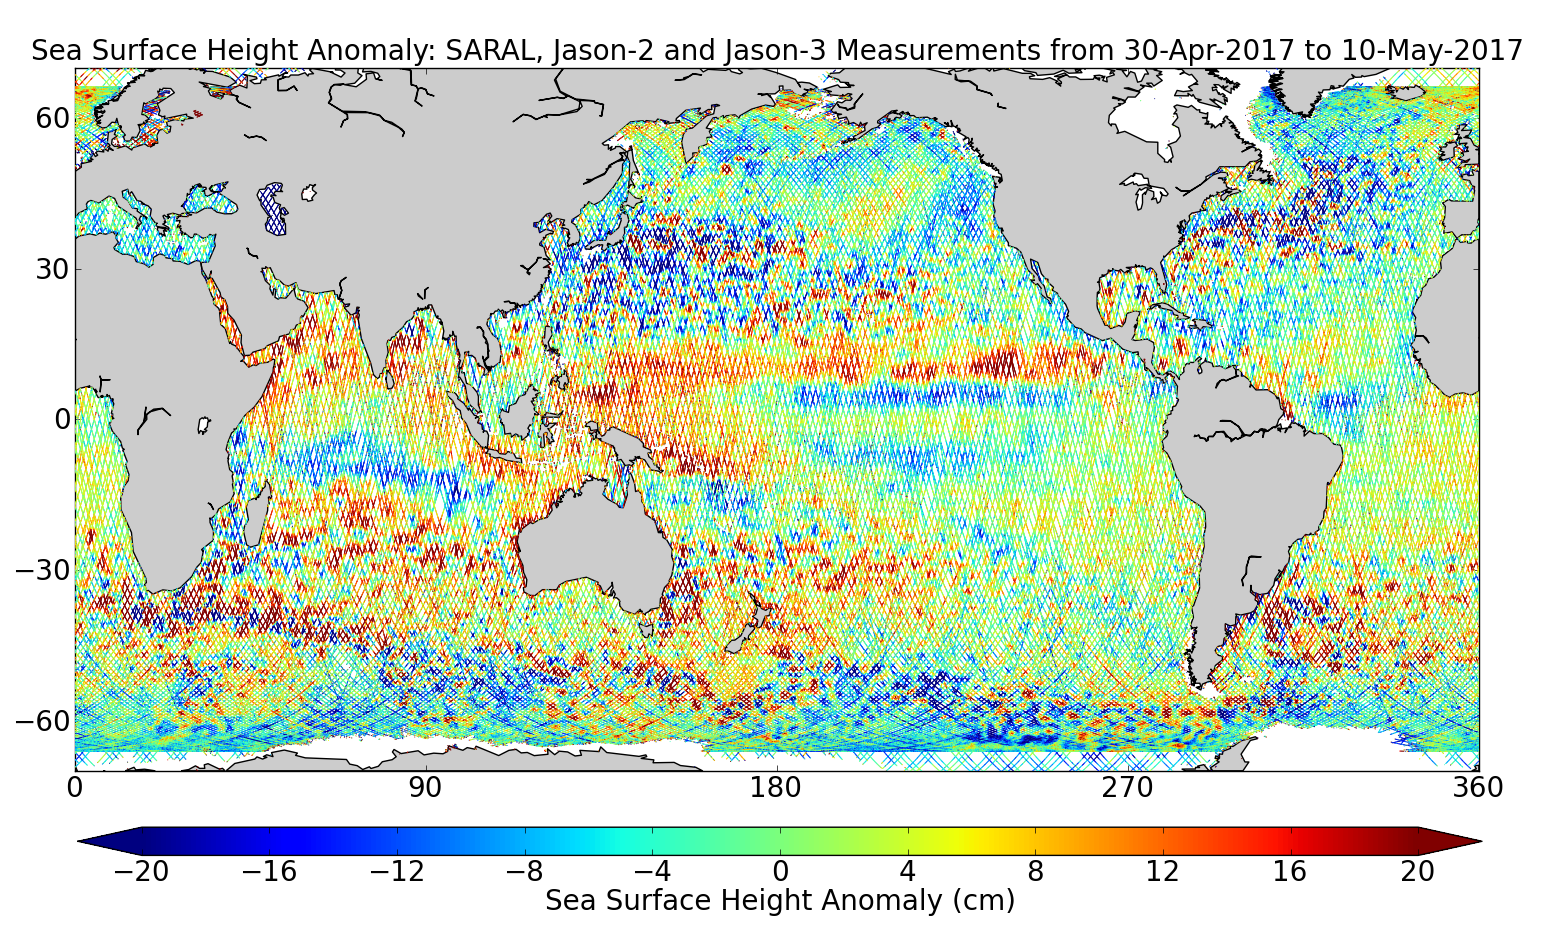 Sea Surface Height Anomaly: SARAL, Jason-2 and Jason-3 Measurements from 30-Apr-2017 to 10-May-2017